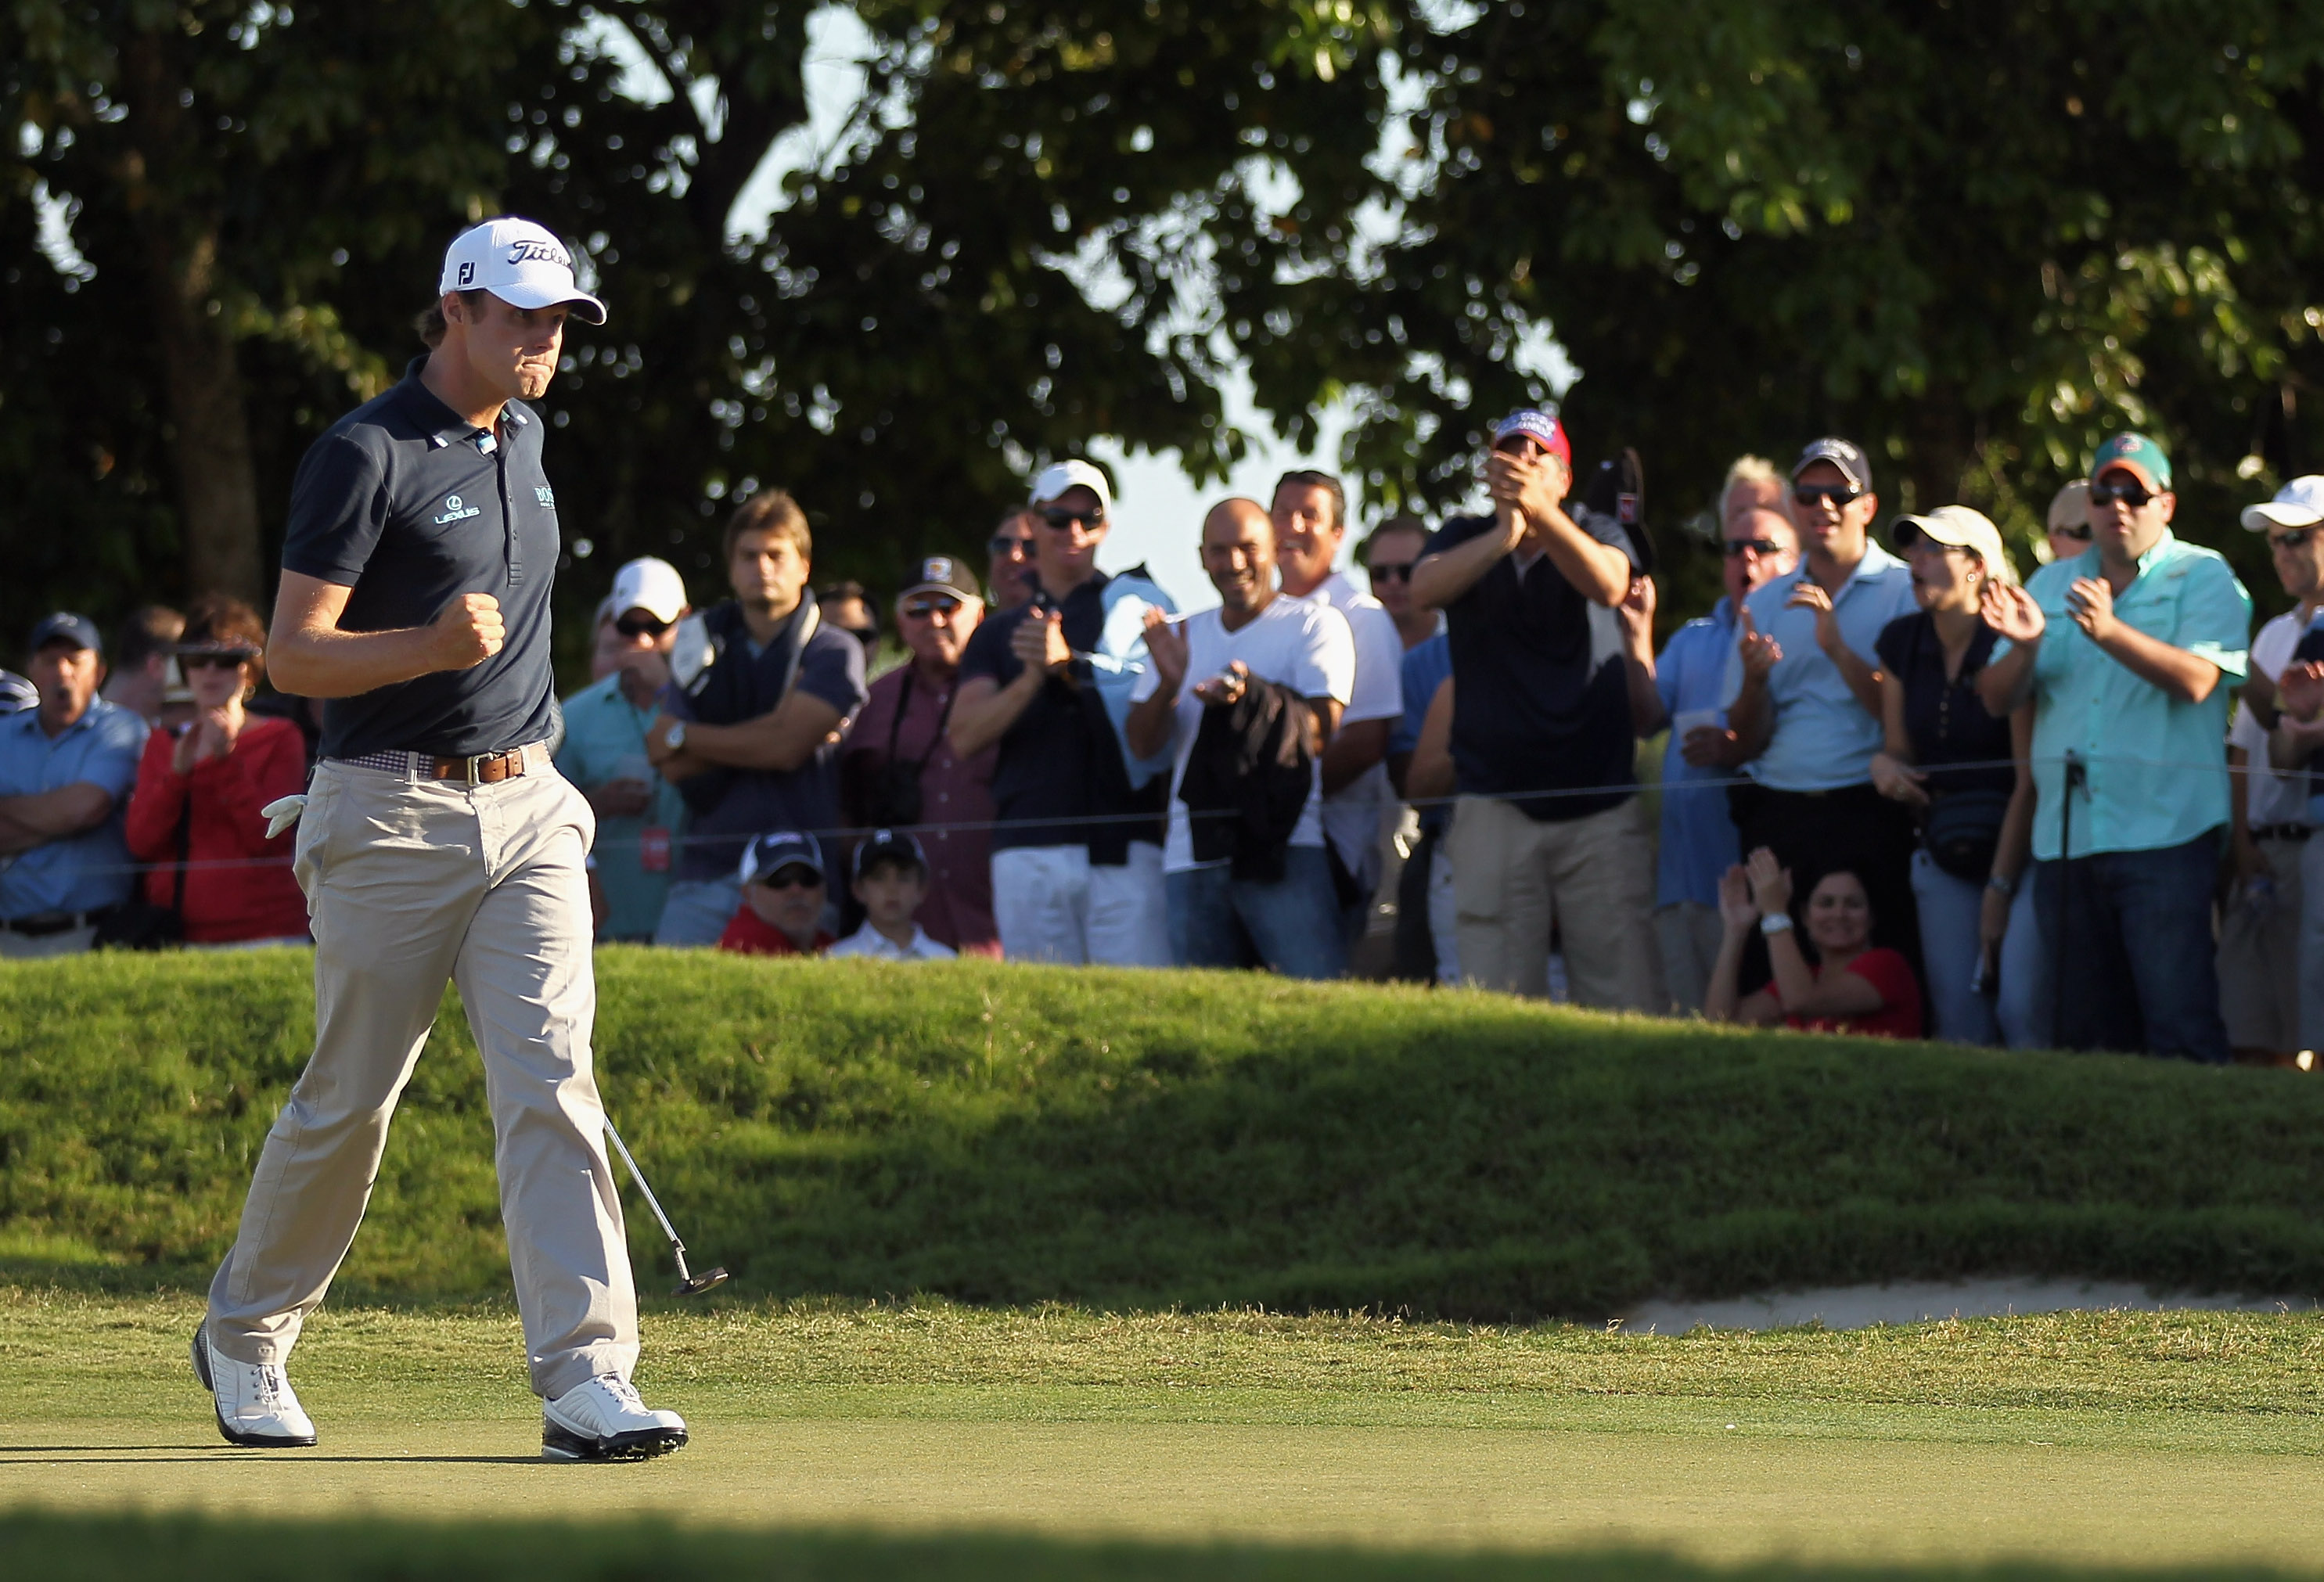 DORAL, FL - MARCH 13:  Nick Watney celebrates his par saving putt on the 15th green during the final round of the 2011 WGC- Cadillac Championship at the TPC Blue Monster at the Doral Golf Resort and Spa on March 13, 2011 in Doral, Florida.  (Photo by Mike